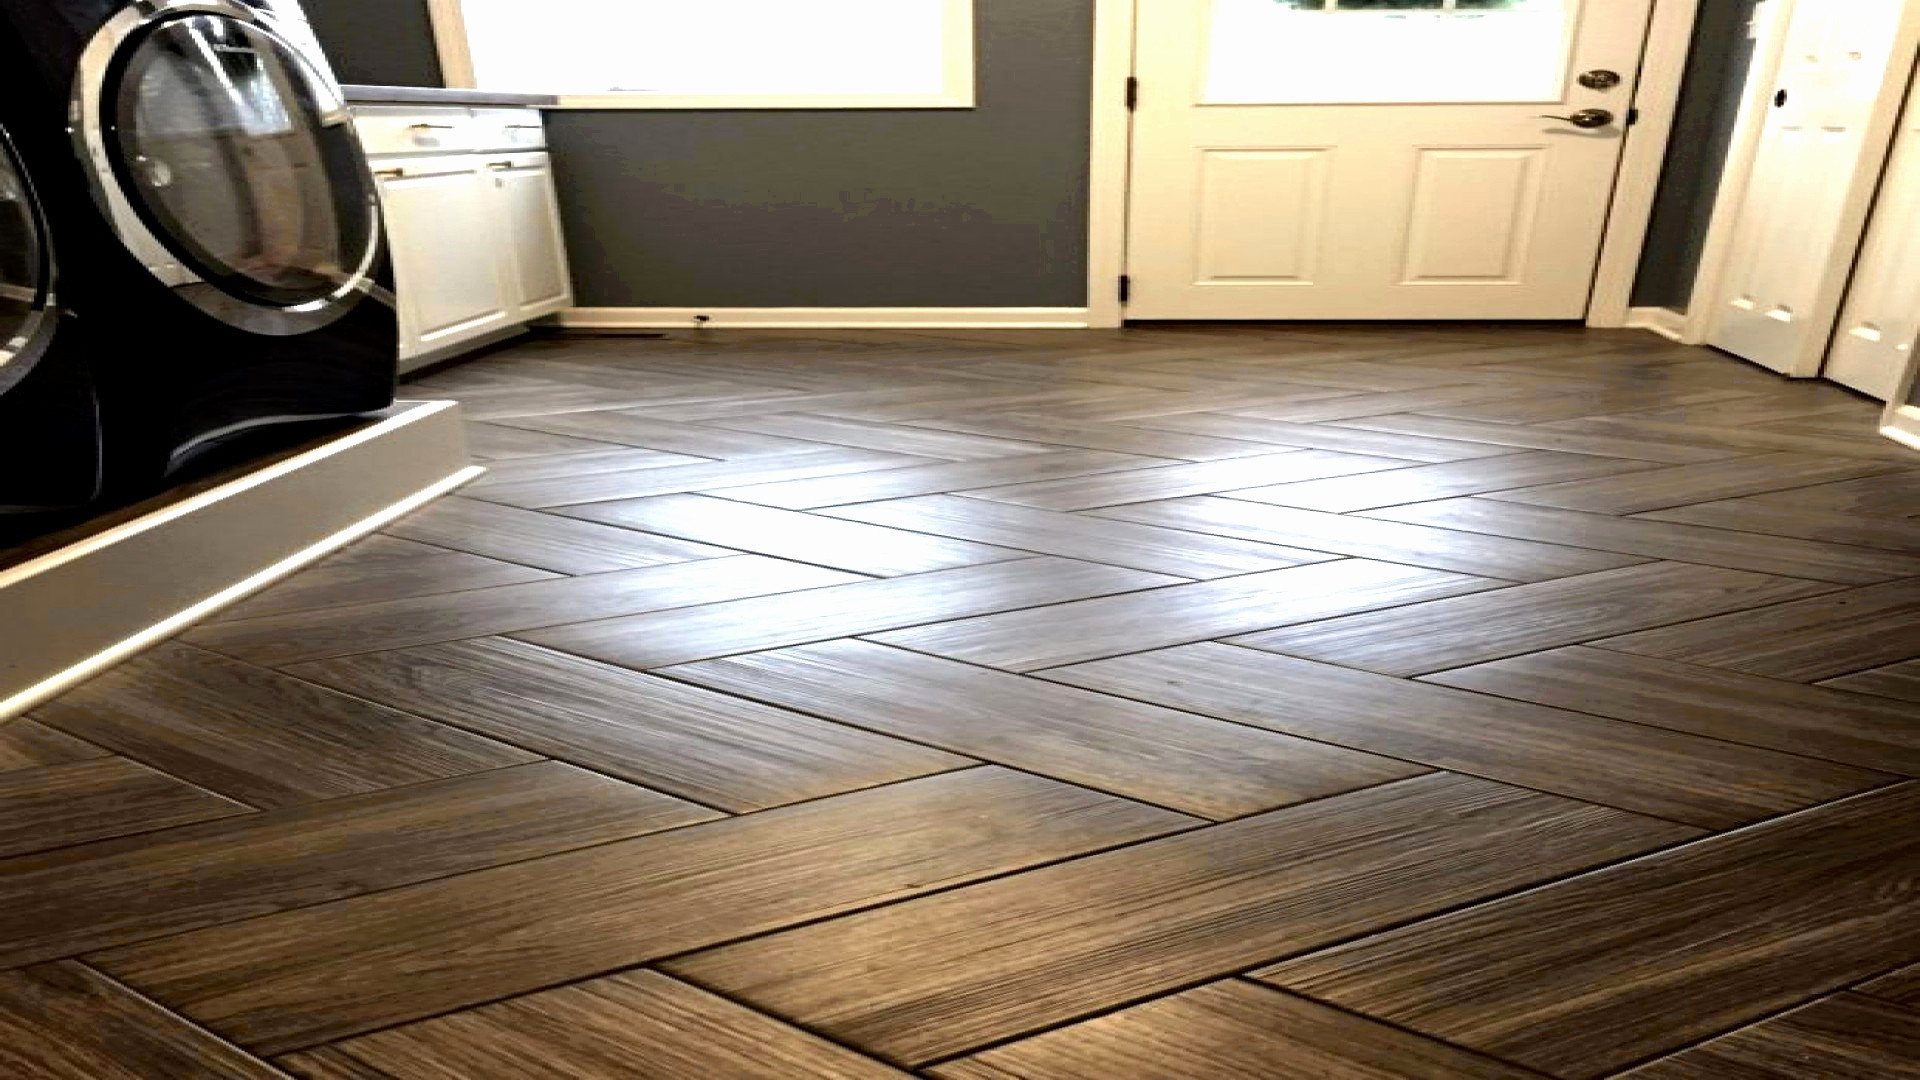 rona hardwood flooring sale of wood floor contractors floor plan ideas for kitchen floor tiles home depot elegant s media cache ak0 pinimg 736x 43 0d 97 best